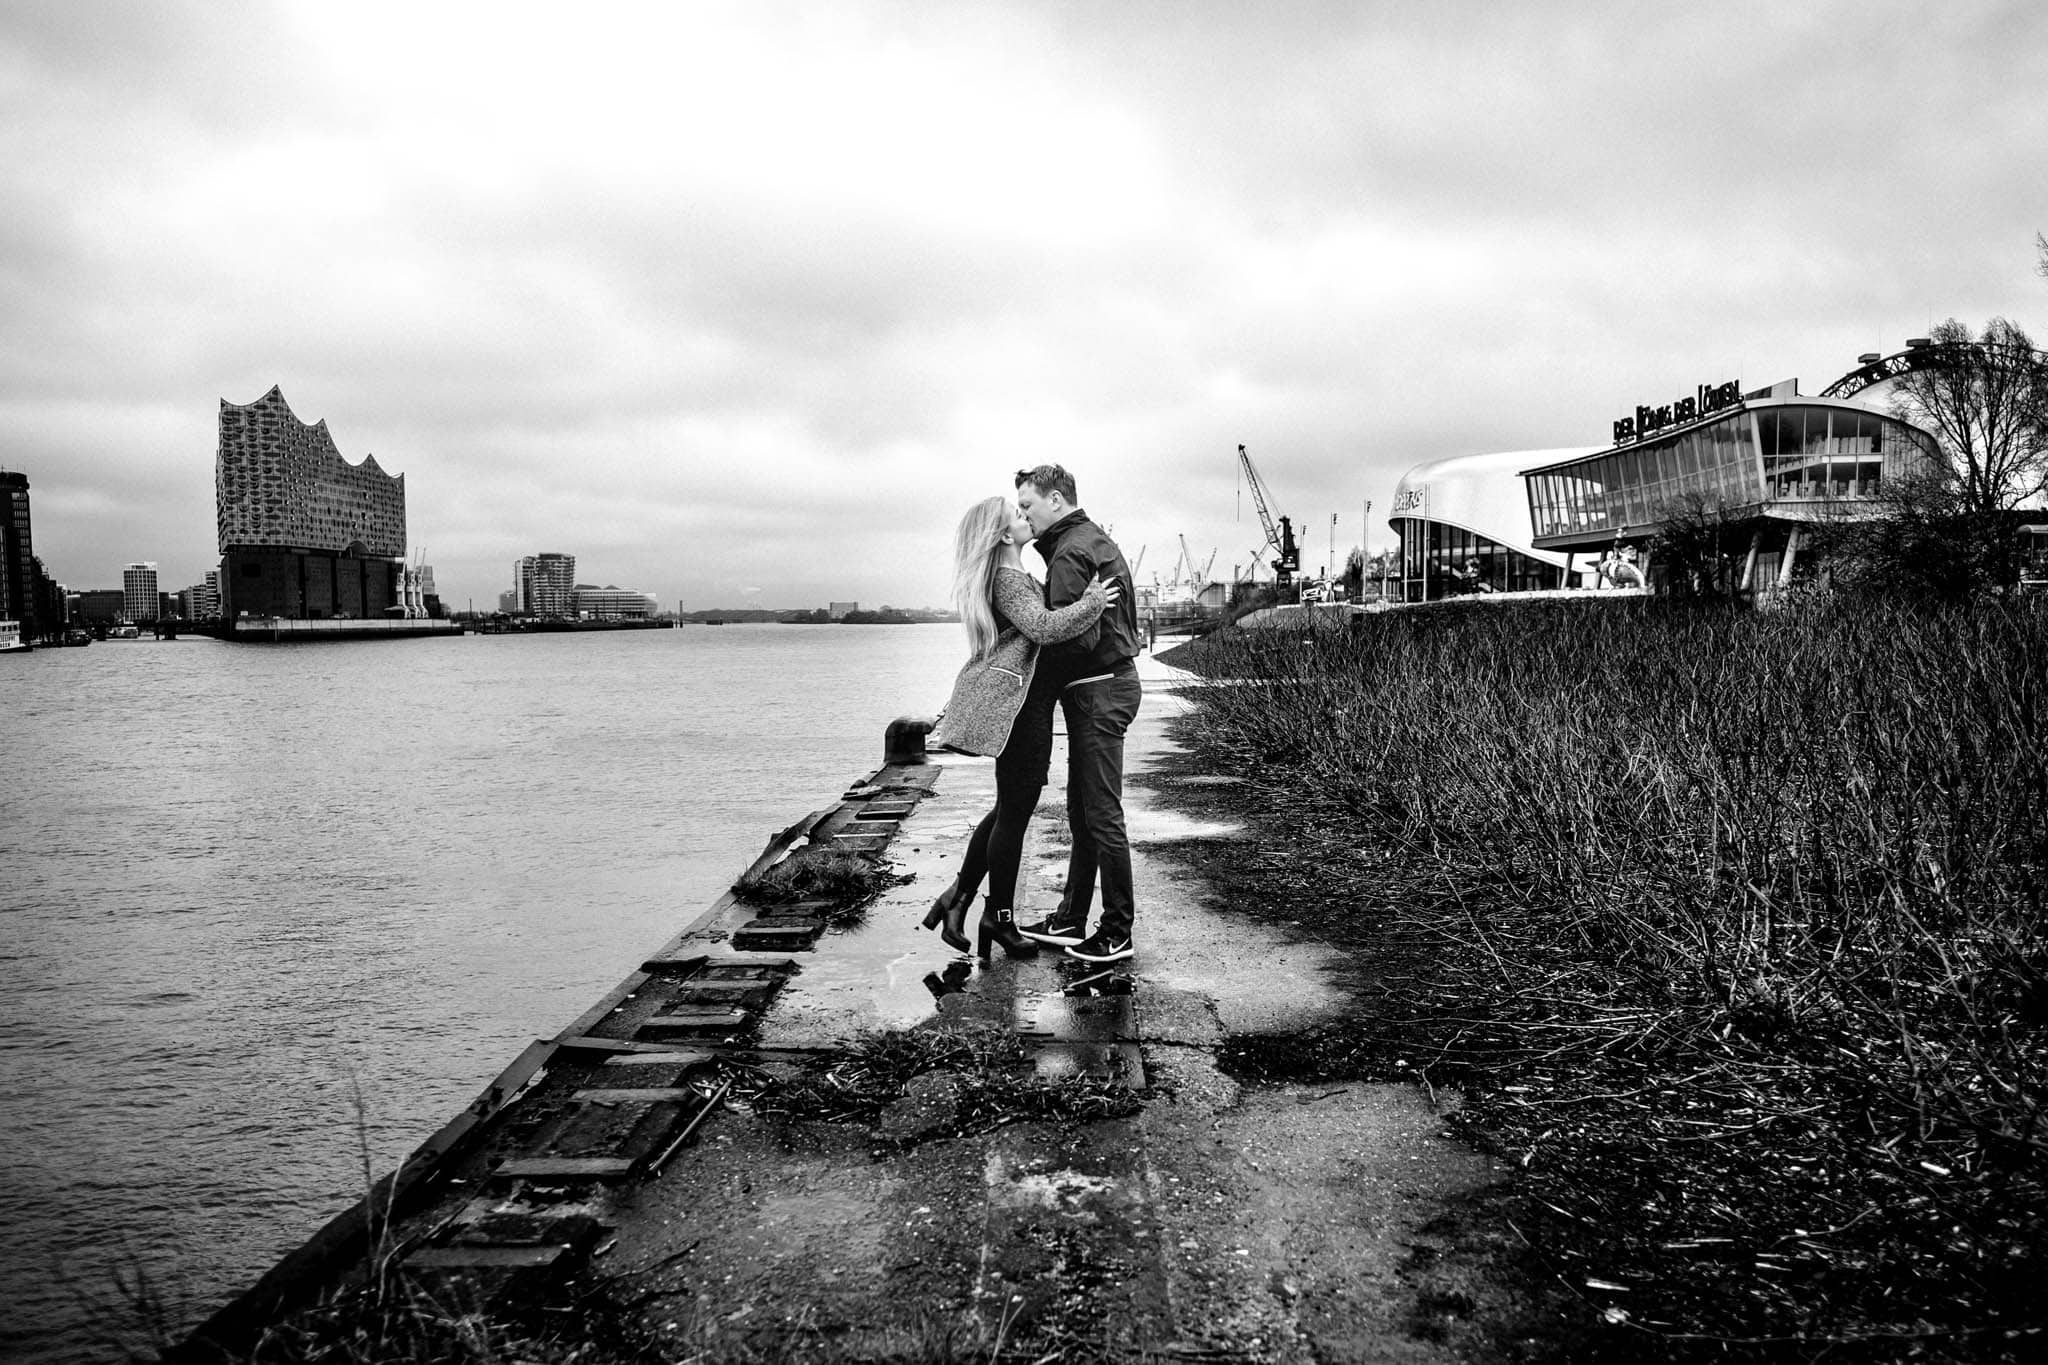 Engagementshooting, Hochzeitsfieber by Photo-Schomburg, Pärchenshoot, Hamburg, Elbe, Hamburger Hafen, Hochzeitsfotograf, Wedding, Coupleshoot, Hochzeitsfotografie-20